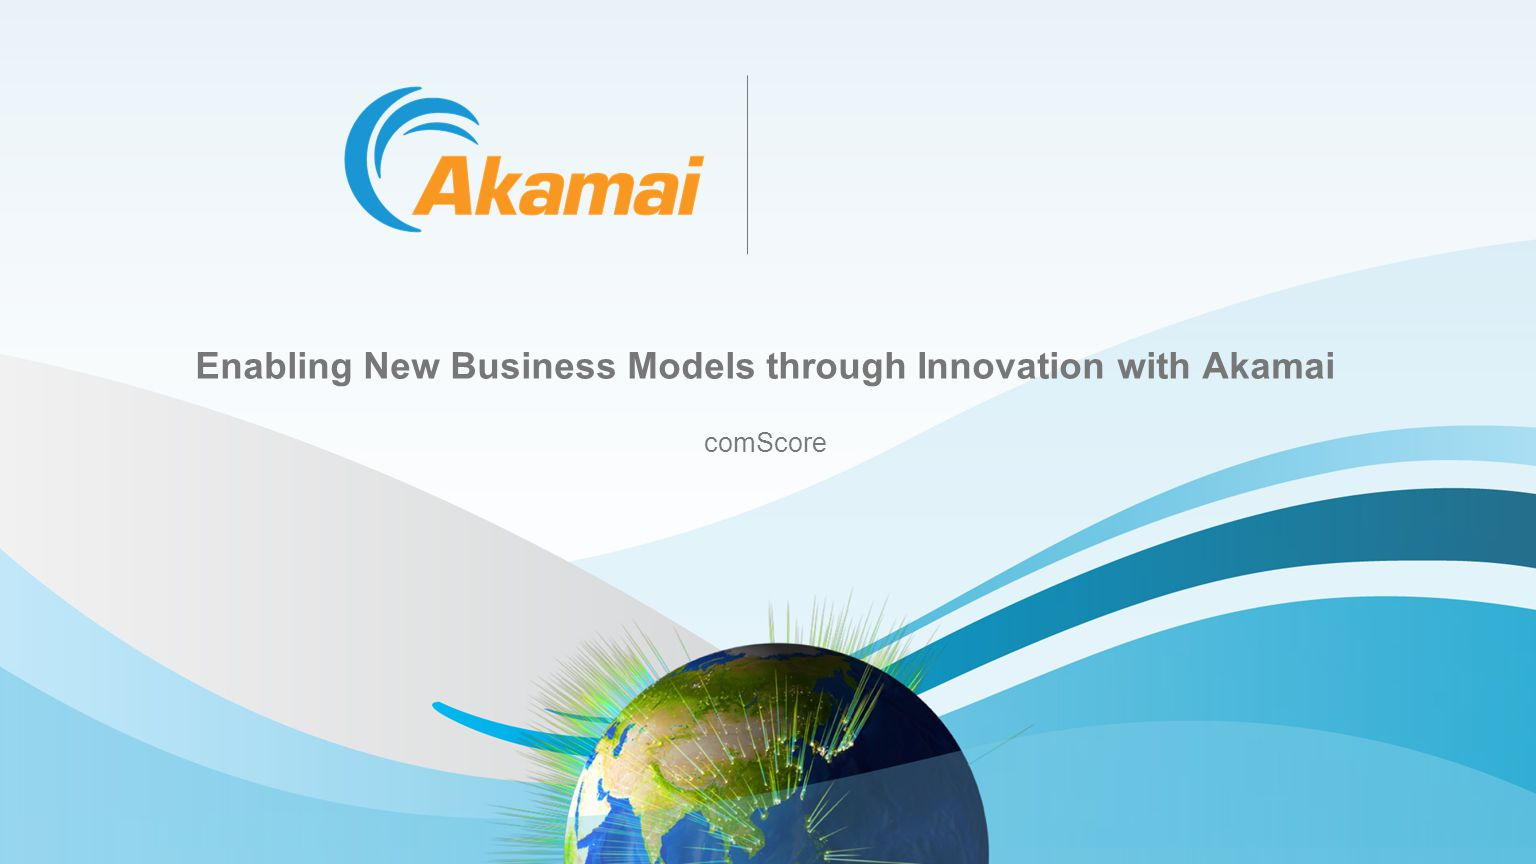 Enabling New Business Models through Innovation with Akamai comScore